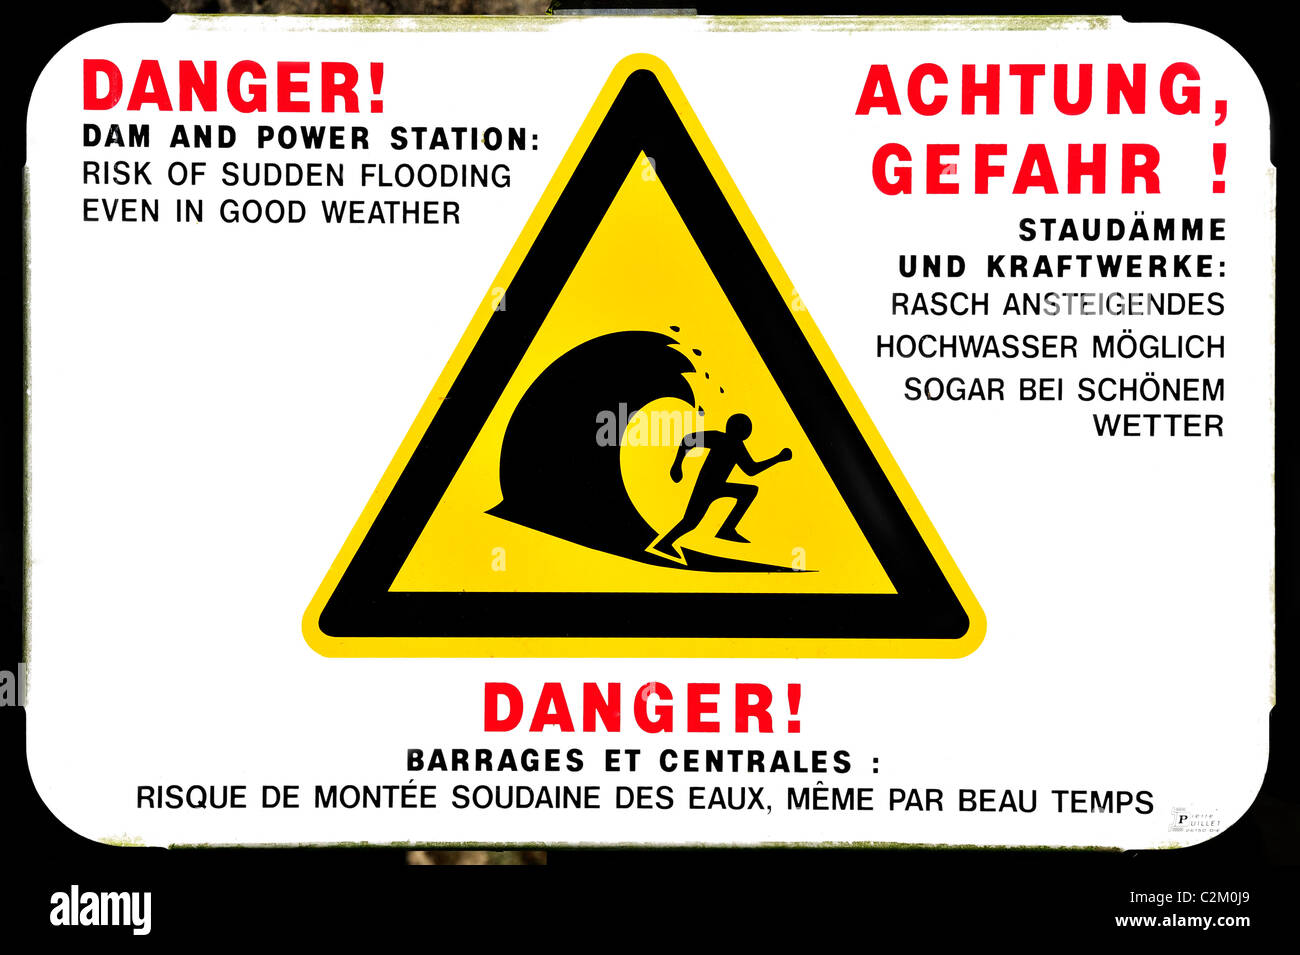 Warning sign for sudden flooding of river by dam from power station, France - Stock Image